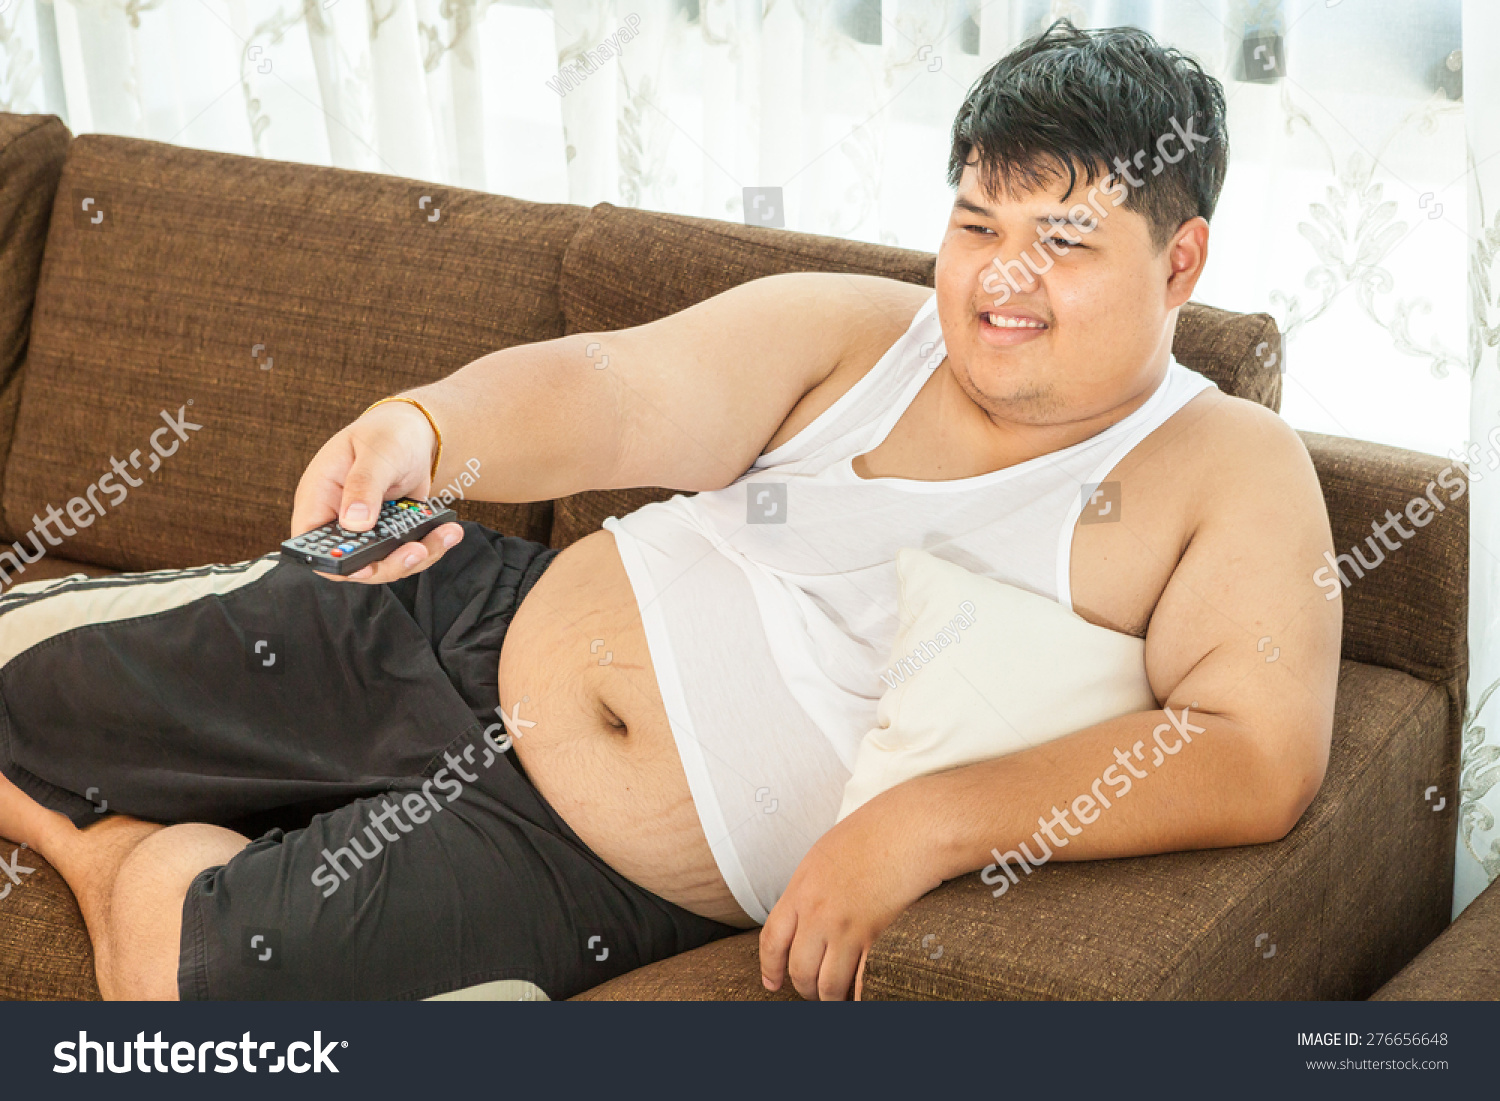 Overweight Asian Guy Sitting On Couch Stock Photo 276656648 ...